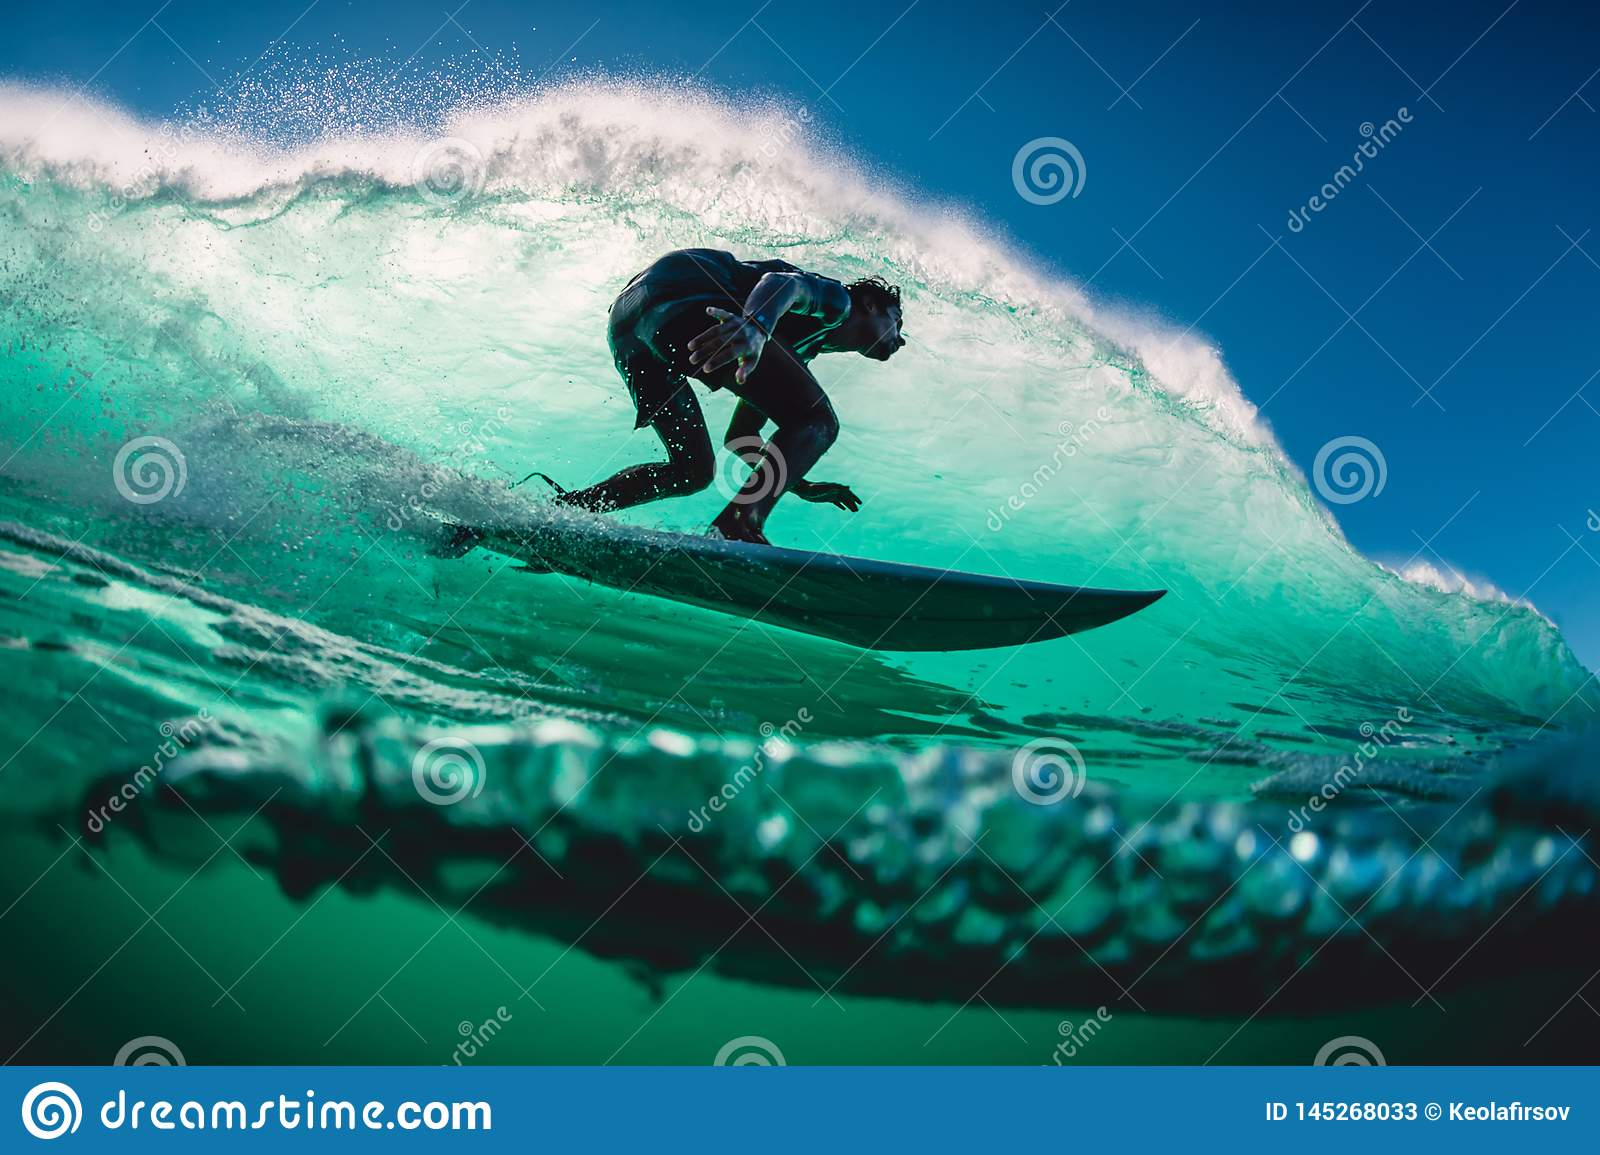 April 18, 2019. Bali, Indonesia. Surfer ride on barrel wave. Professional surfing at big waves in Padang Padang